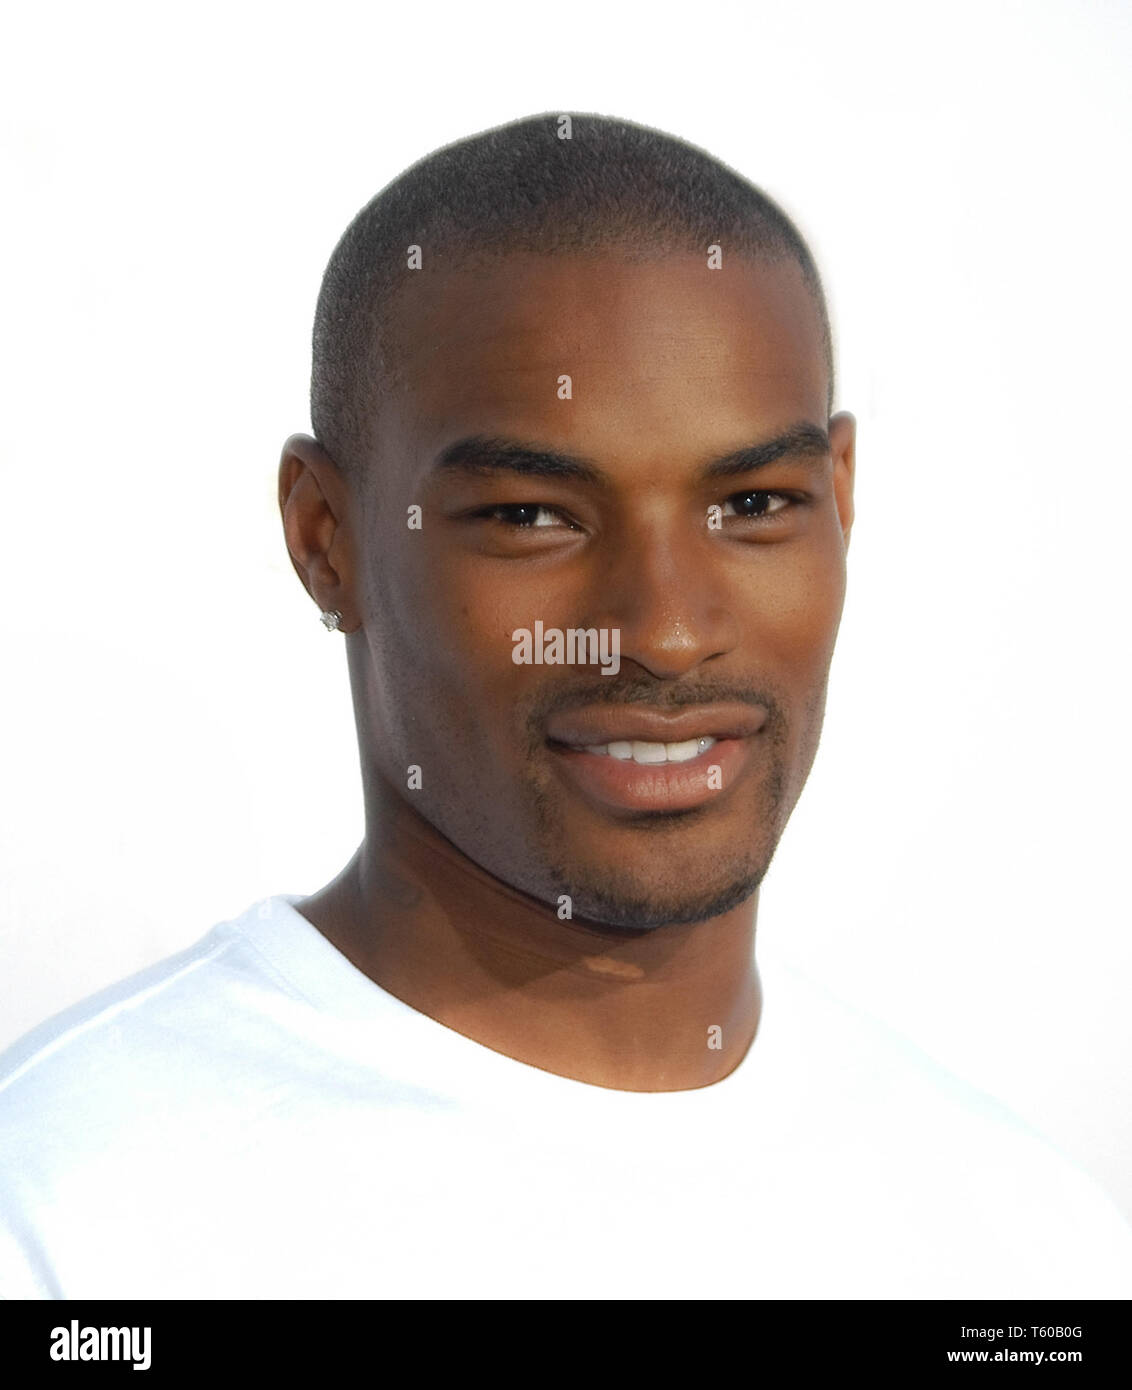 Tyson Beckford at The World Premiere of Columbia Pictures' 'S.W.A.T.', held at The Mann Village Theater in Westwood, CA. The event took place on Wednesday, July 30, 2003. Photo by: SBM / PictureLux  File Reference # 33790_937SBMPLX - Stock Image